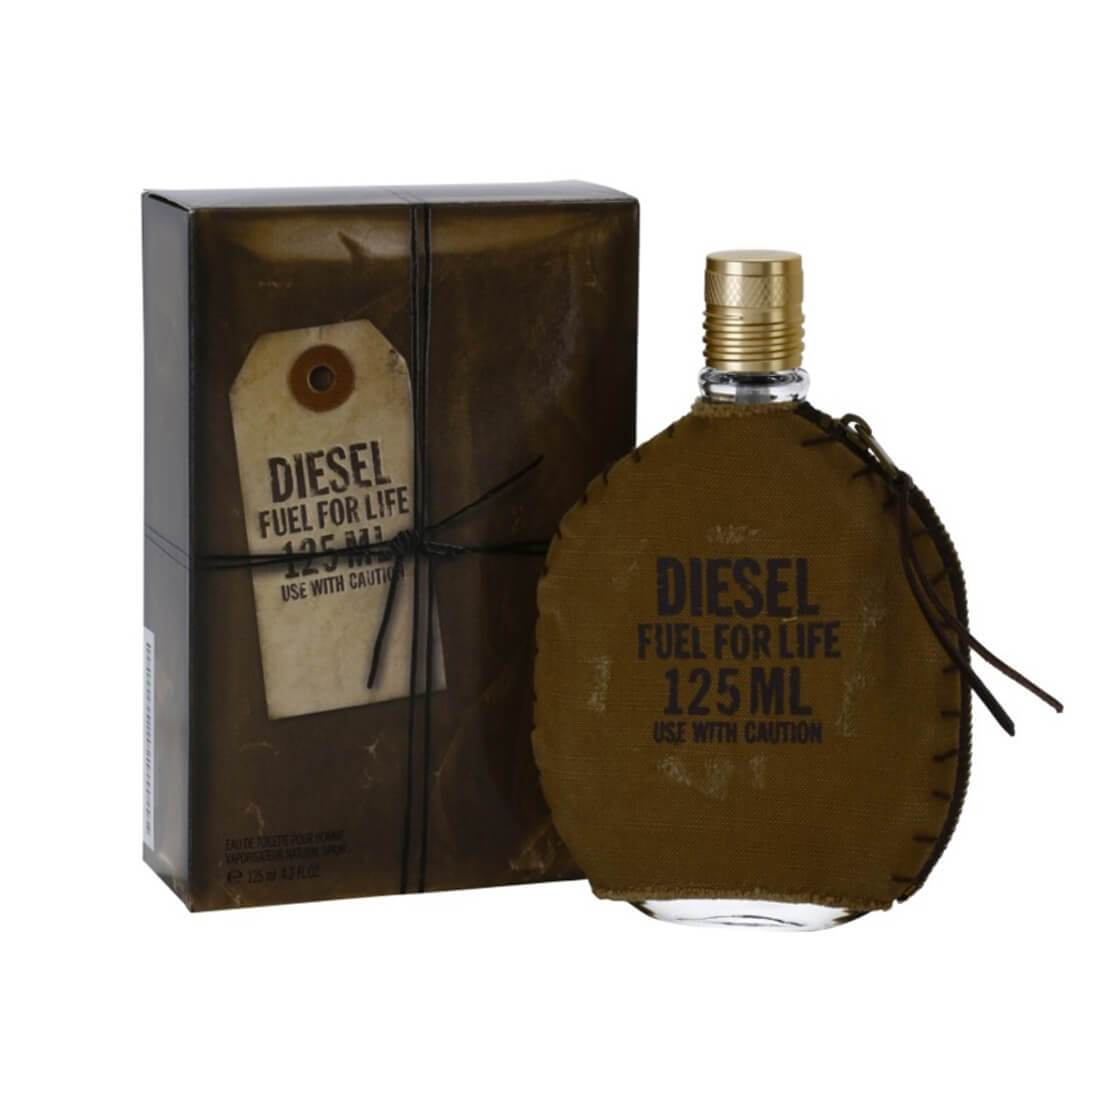 Diesel Fuel For Life EDT Perfume For Men - 125ml